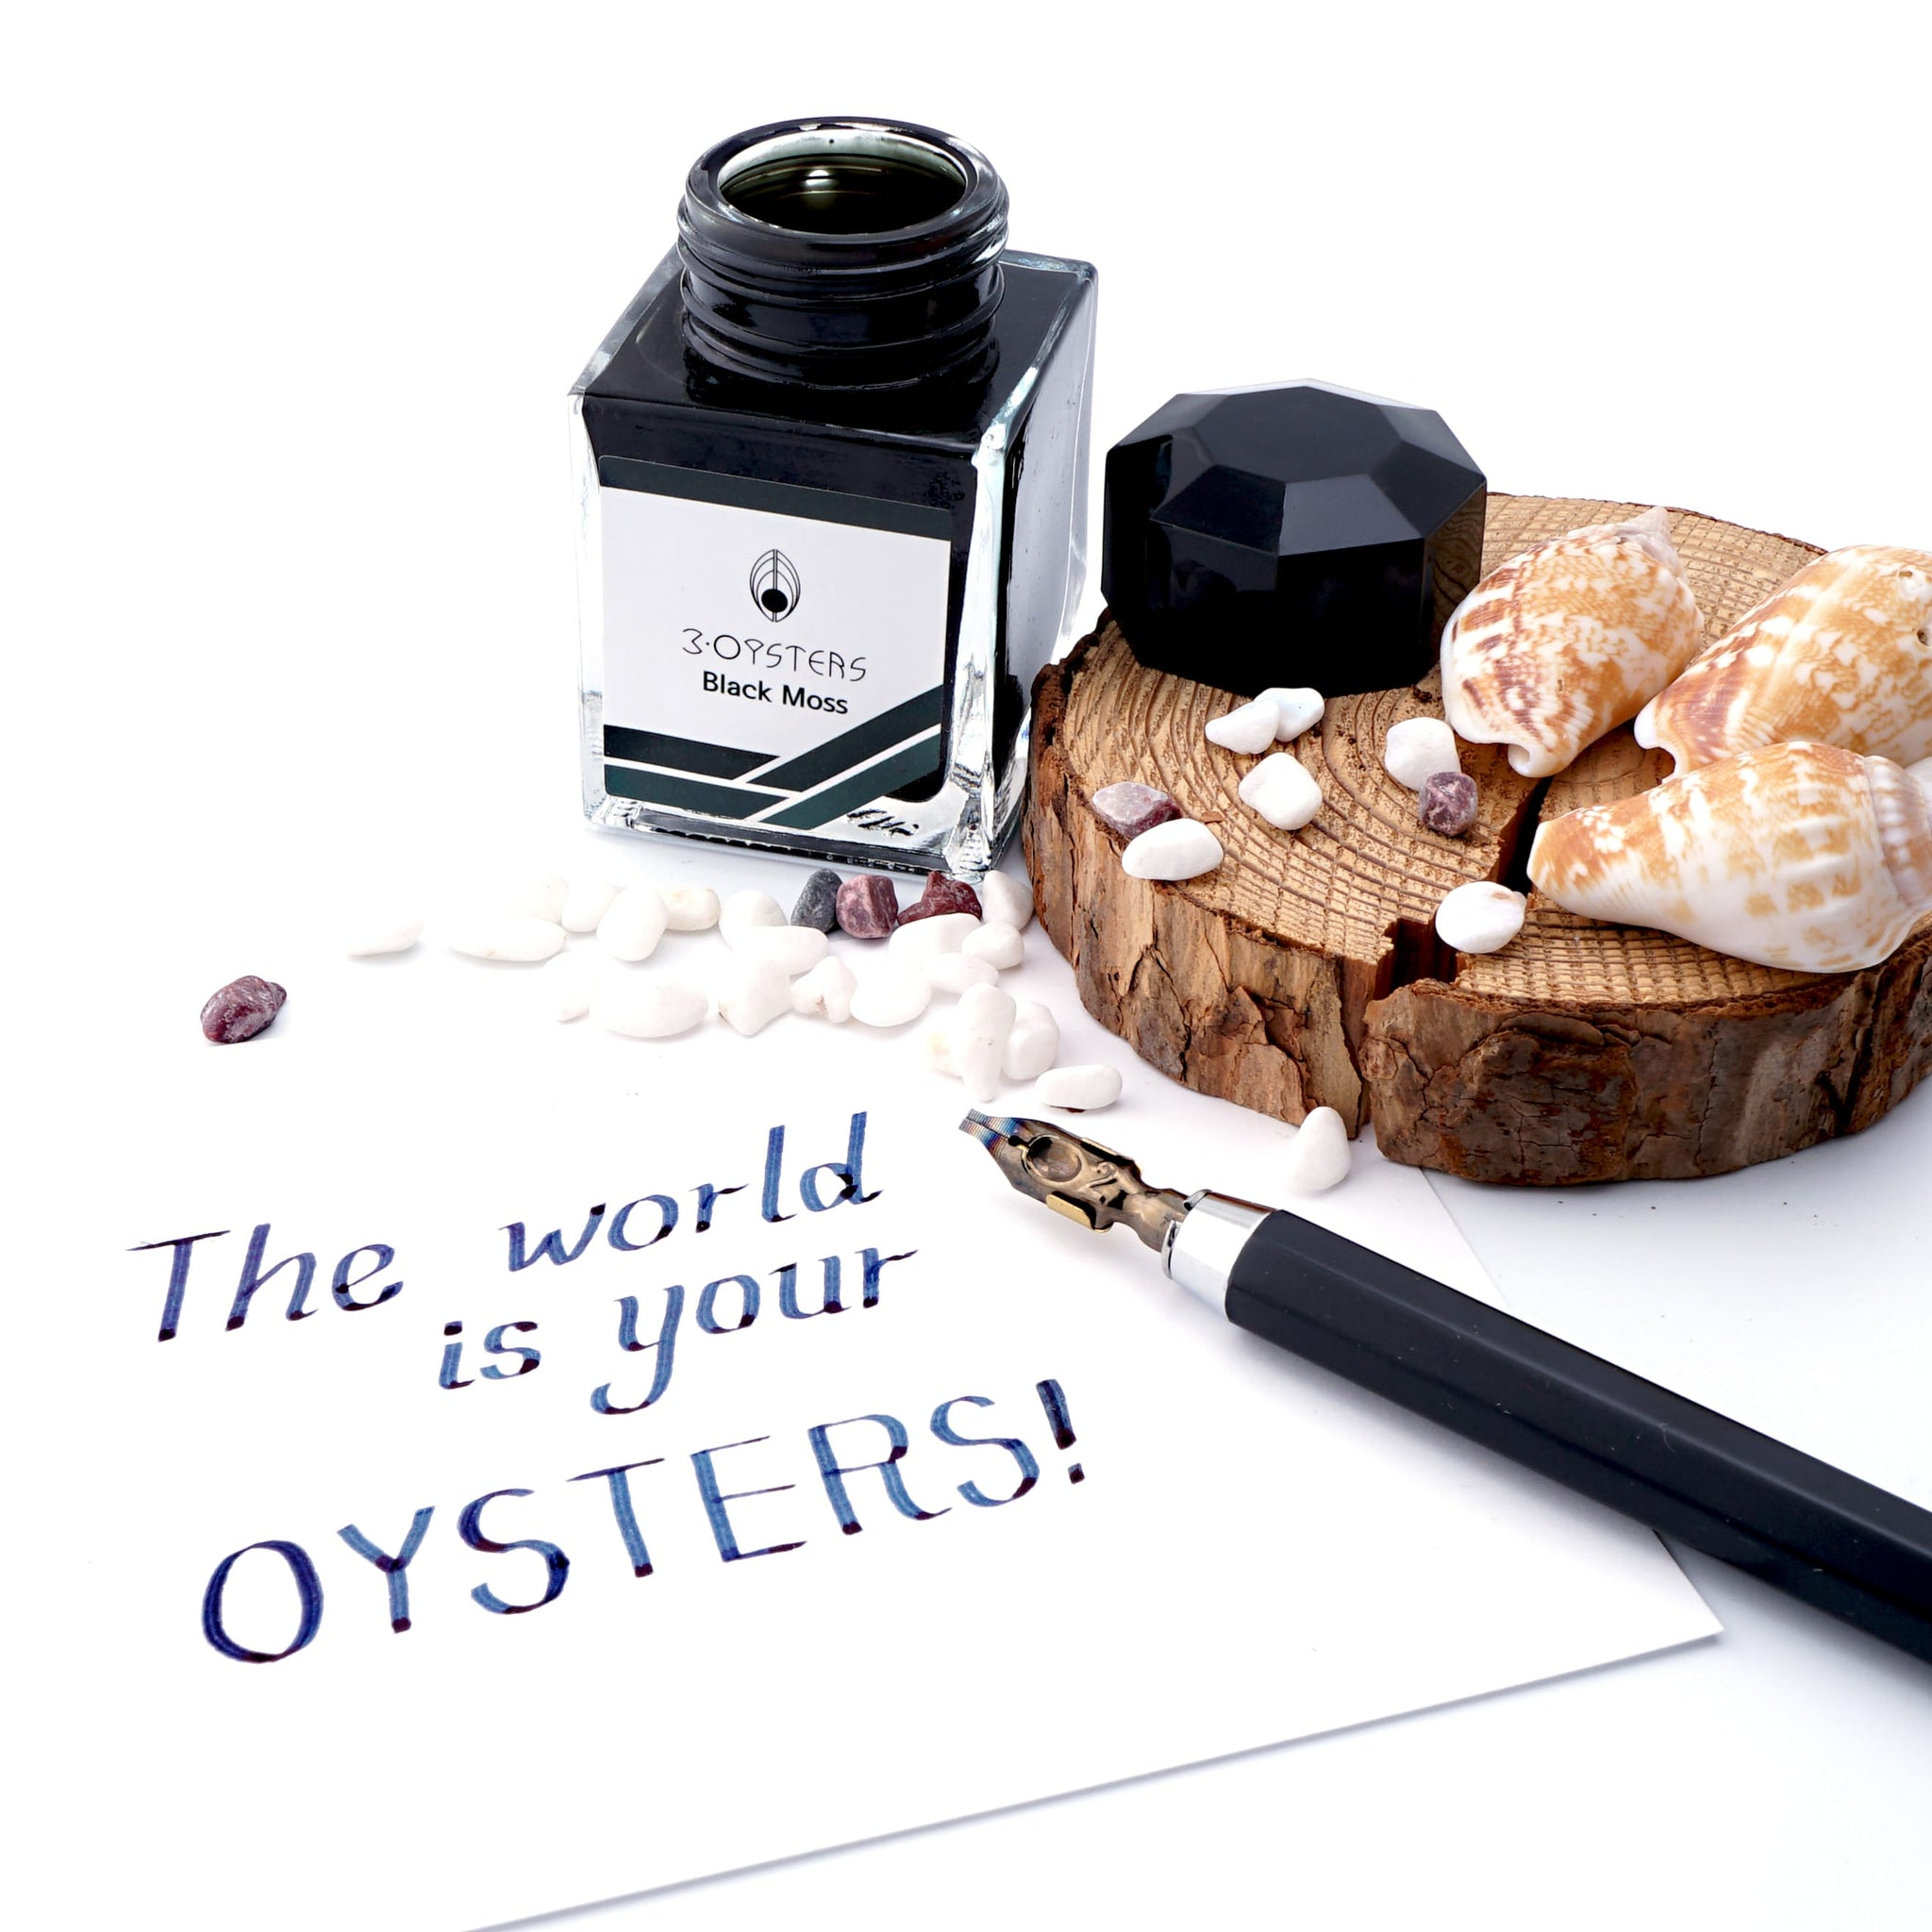 3 Oysters Delicious 38ml Ink Bottle Black Moss